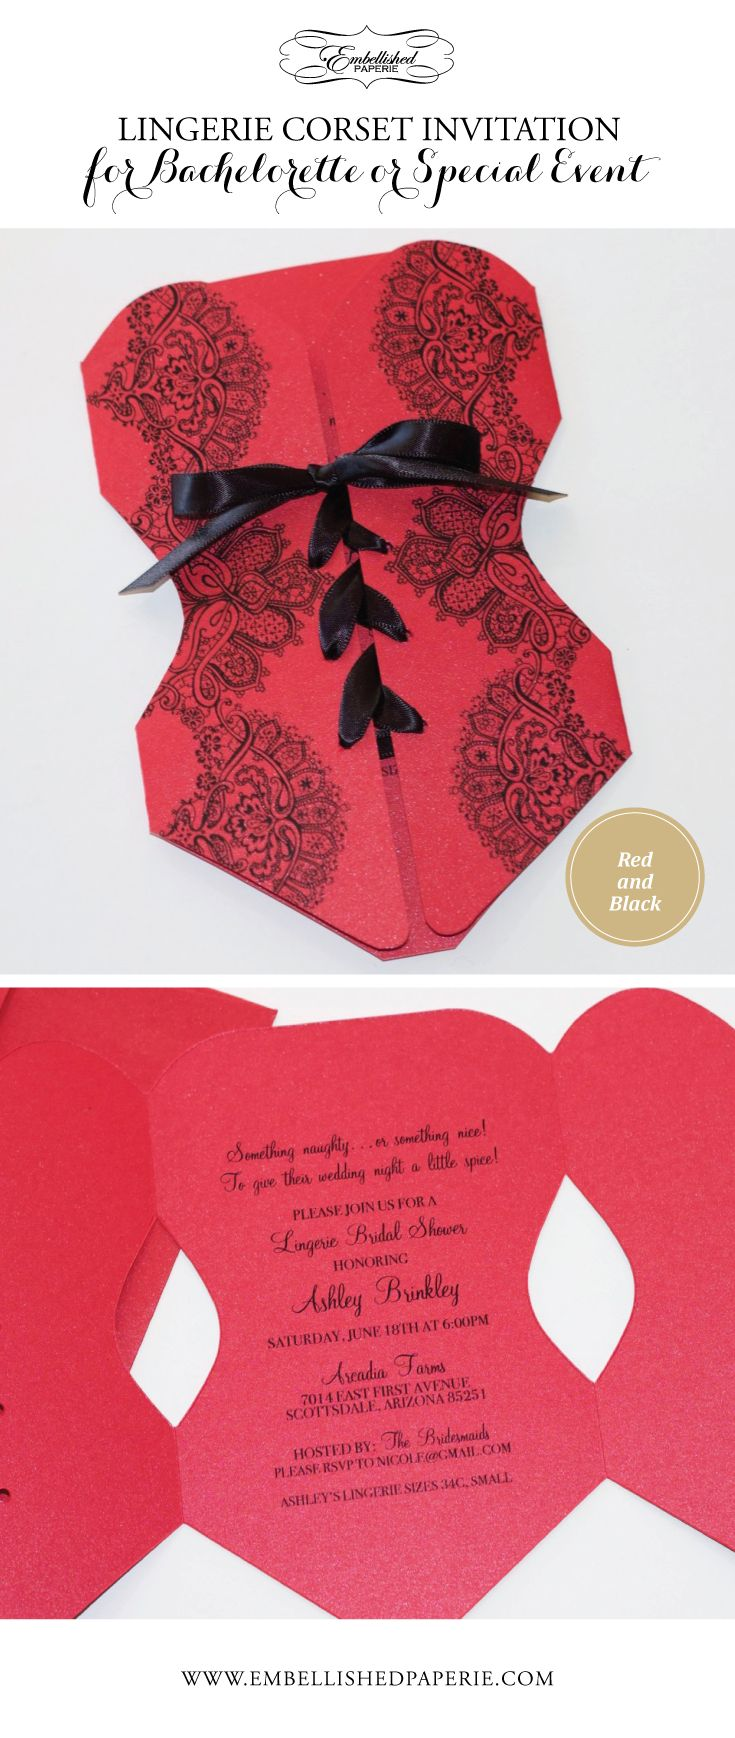 112 best Wedding Invitations images on Pinterest | Lace wedding ...